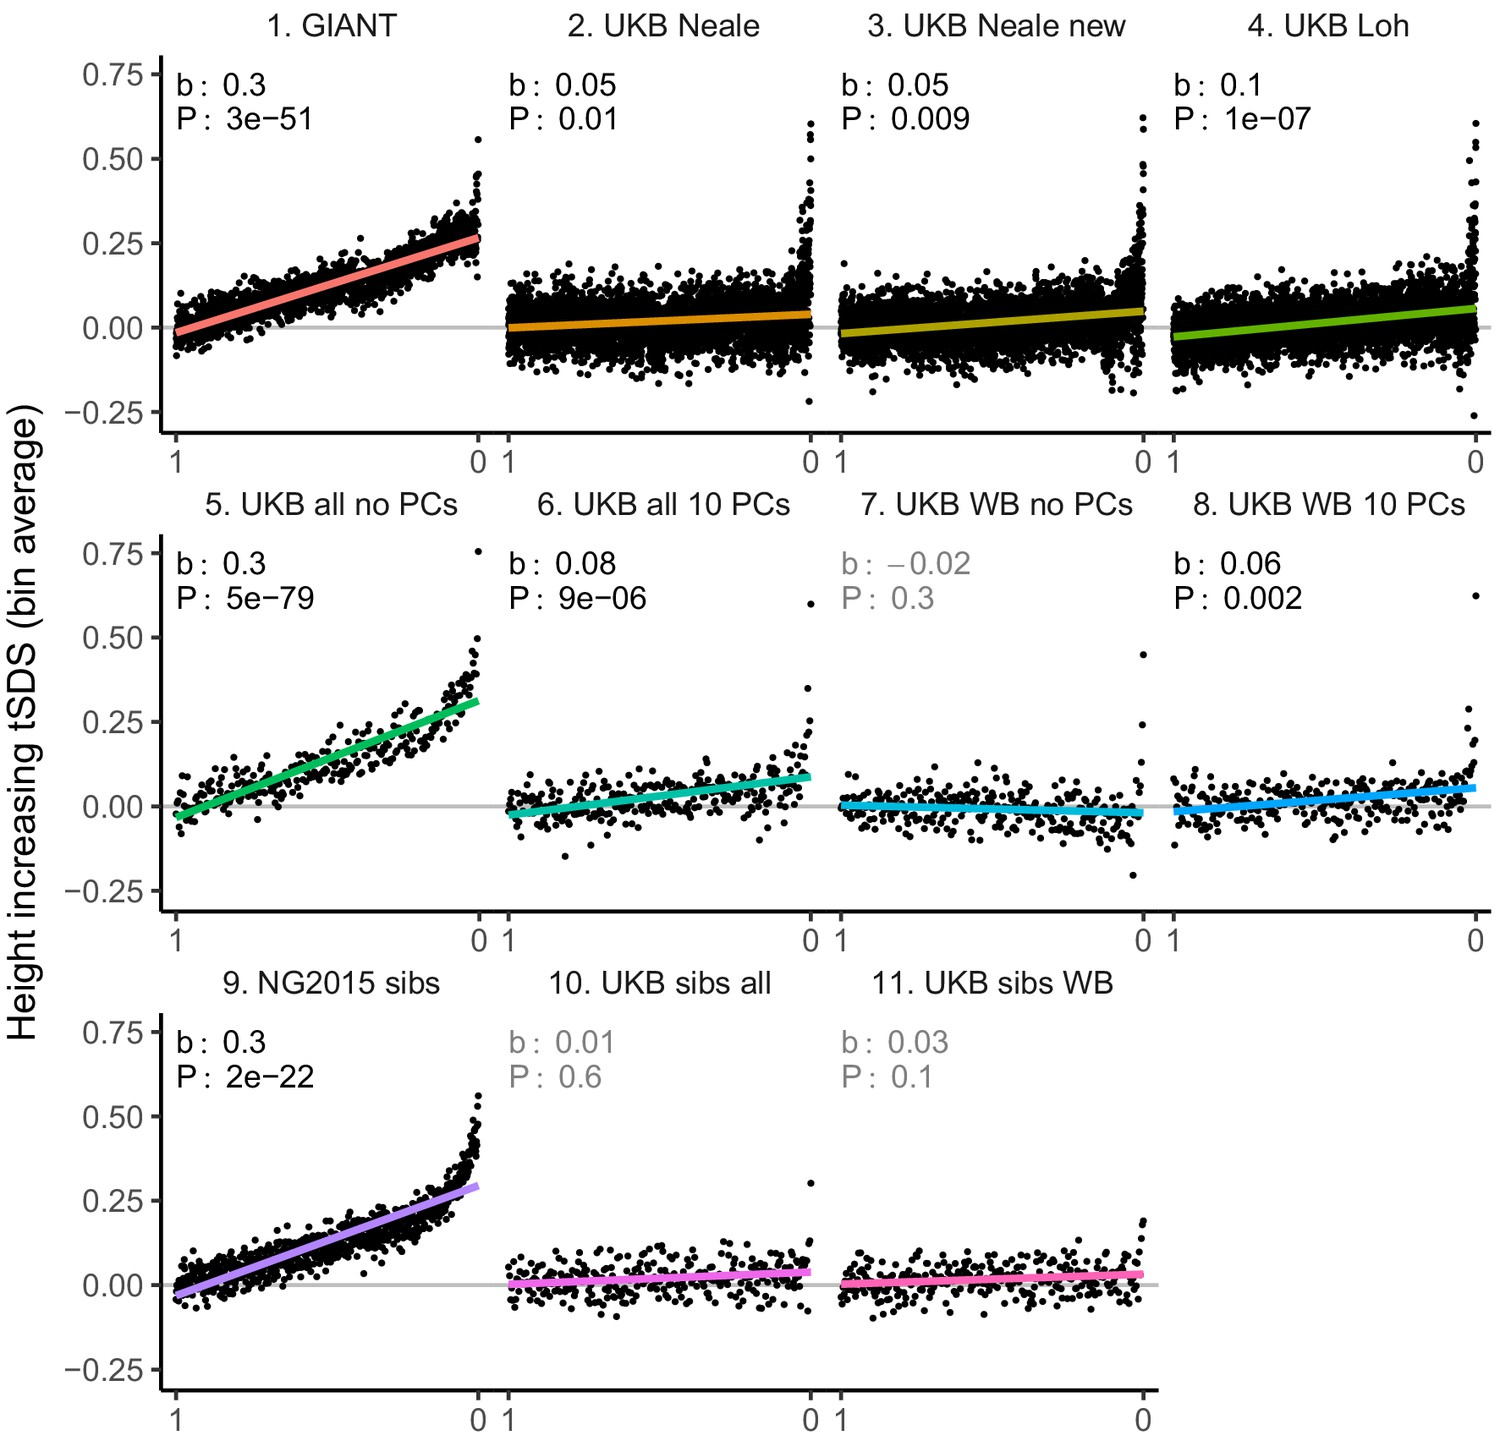 Polygenic adaptation on height is overestimated due to uncorrected